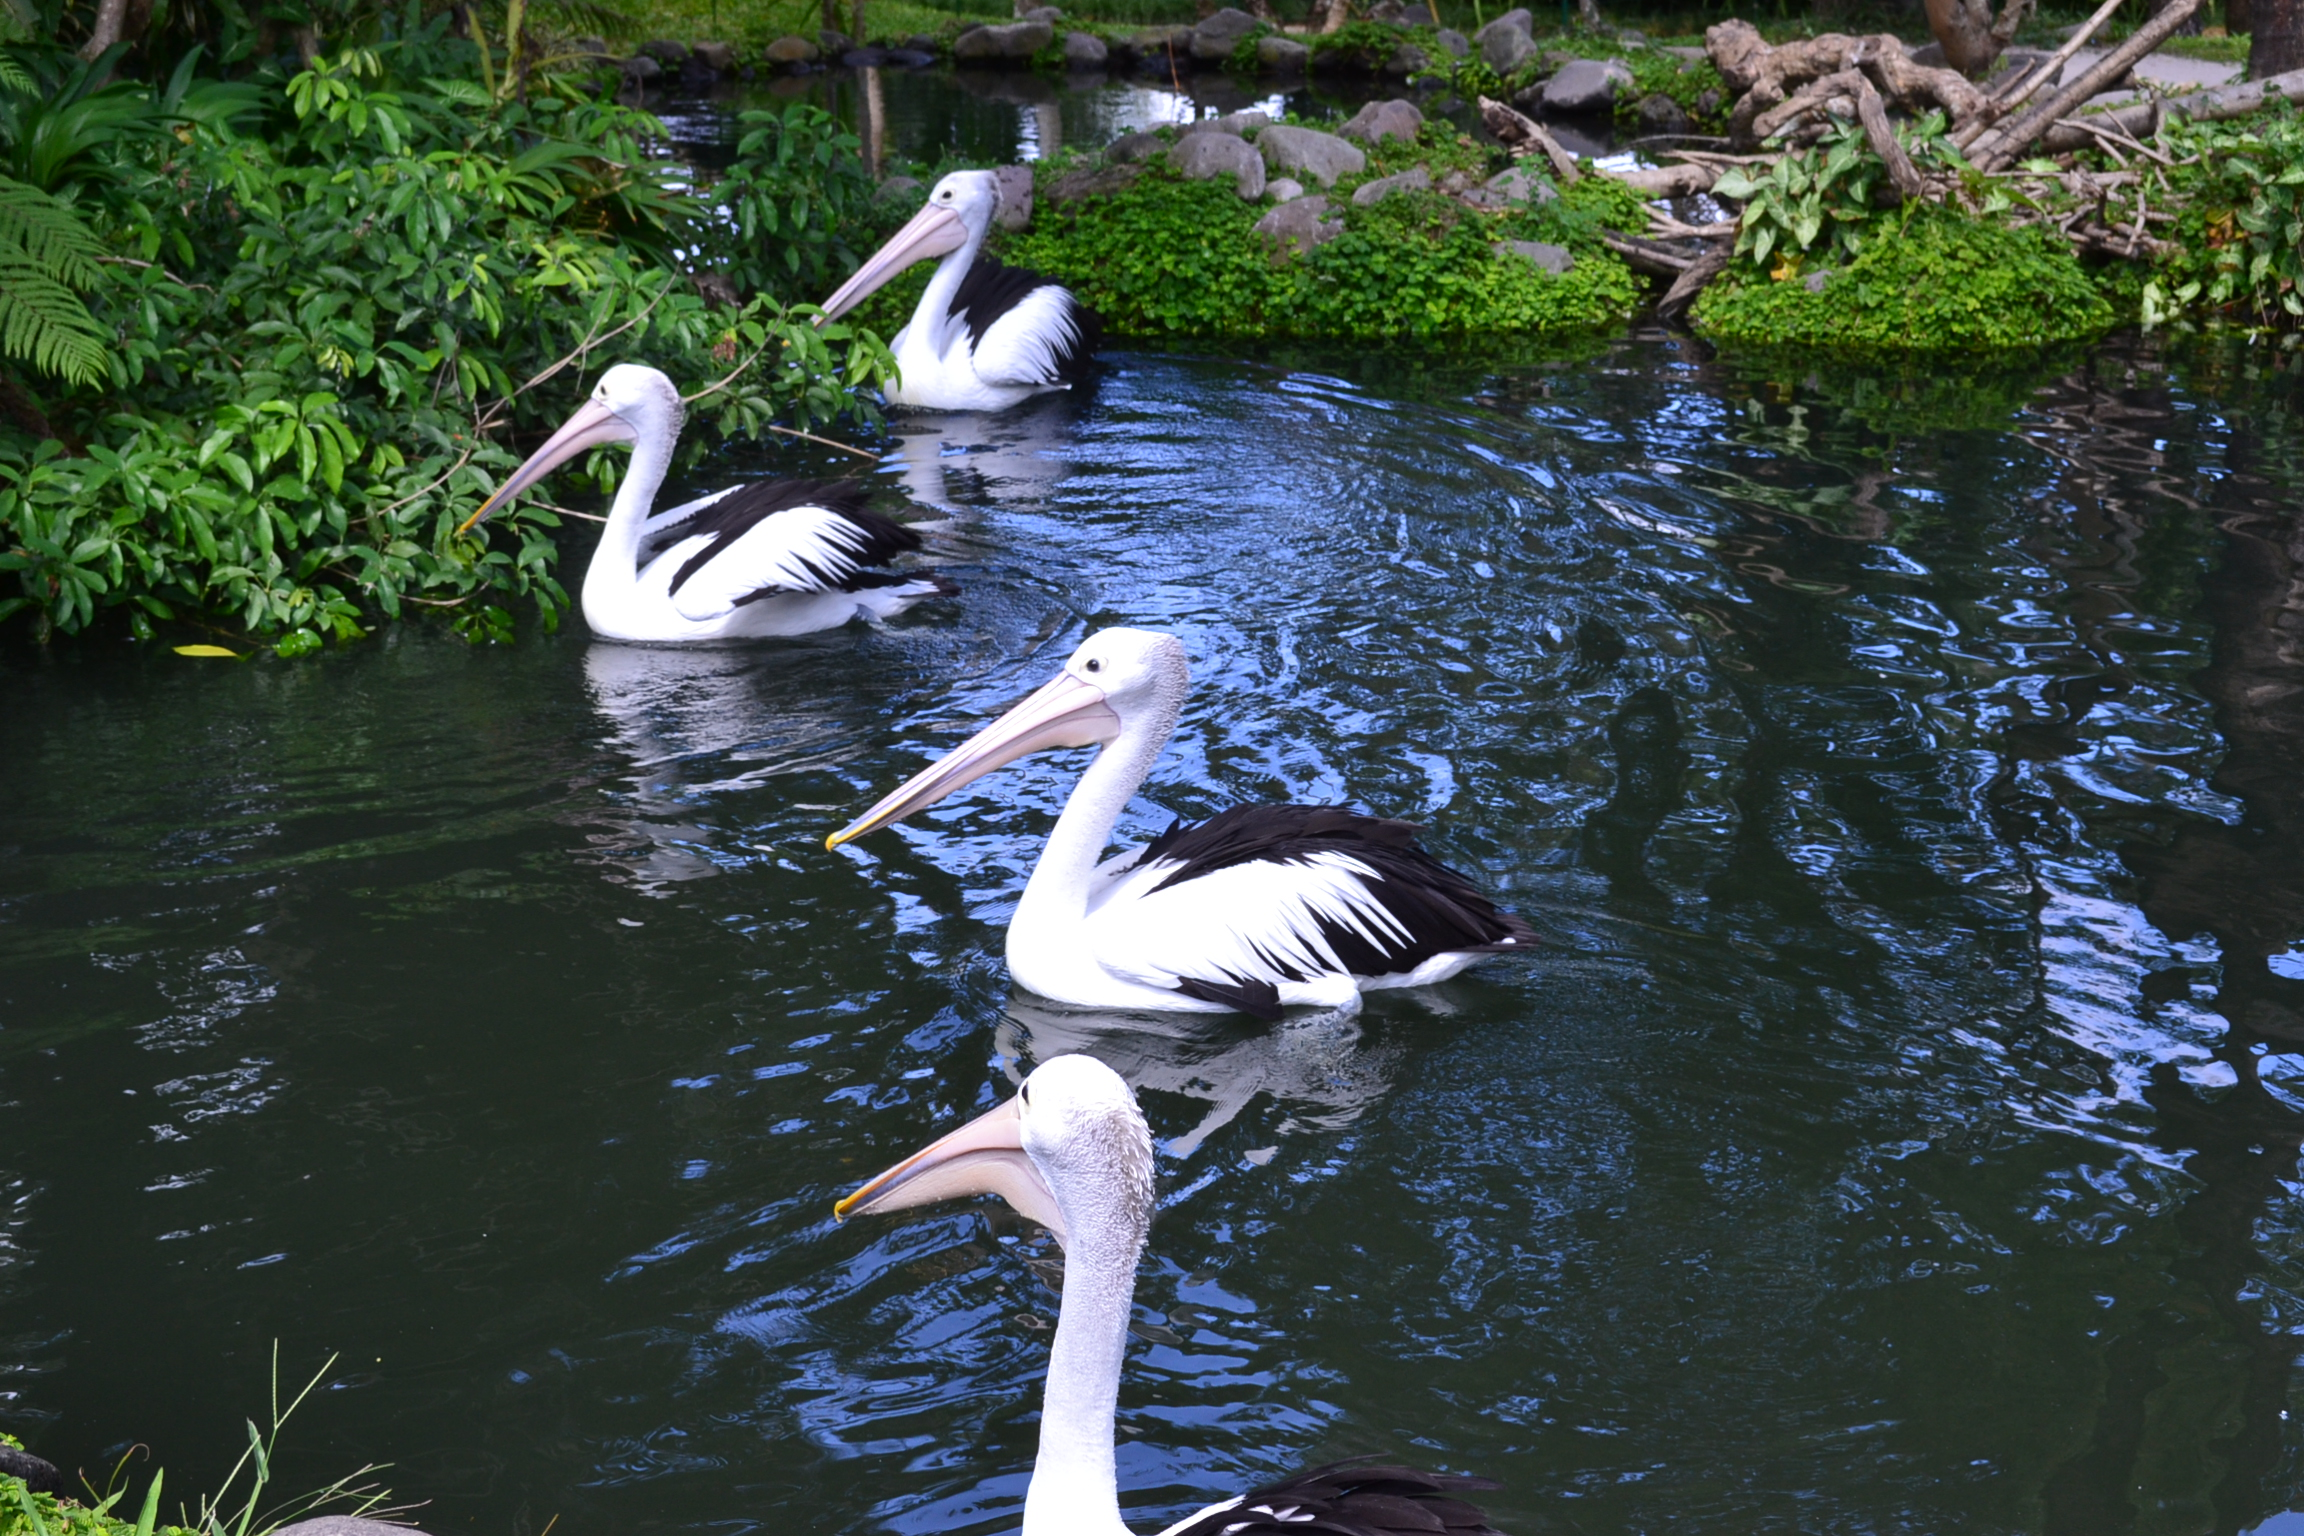 Beautiful varieties of birds in tranquil and peaceful setting makes for a great day out.